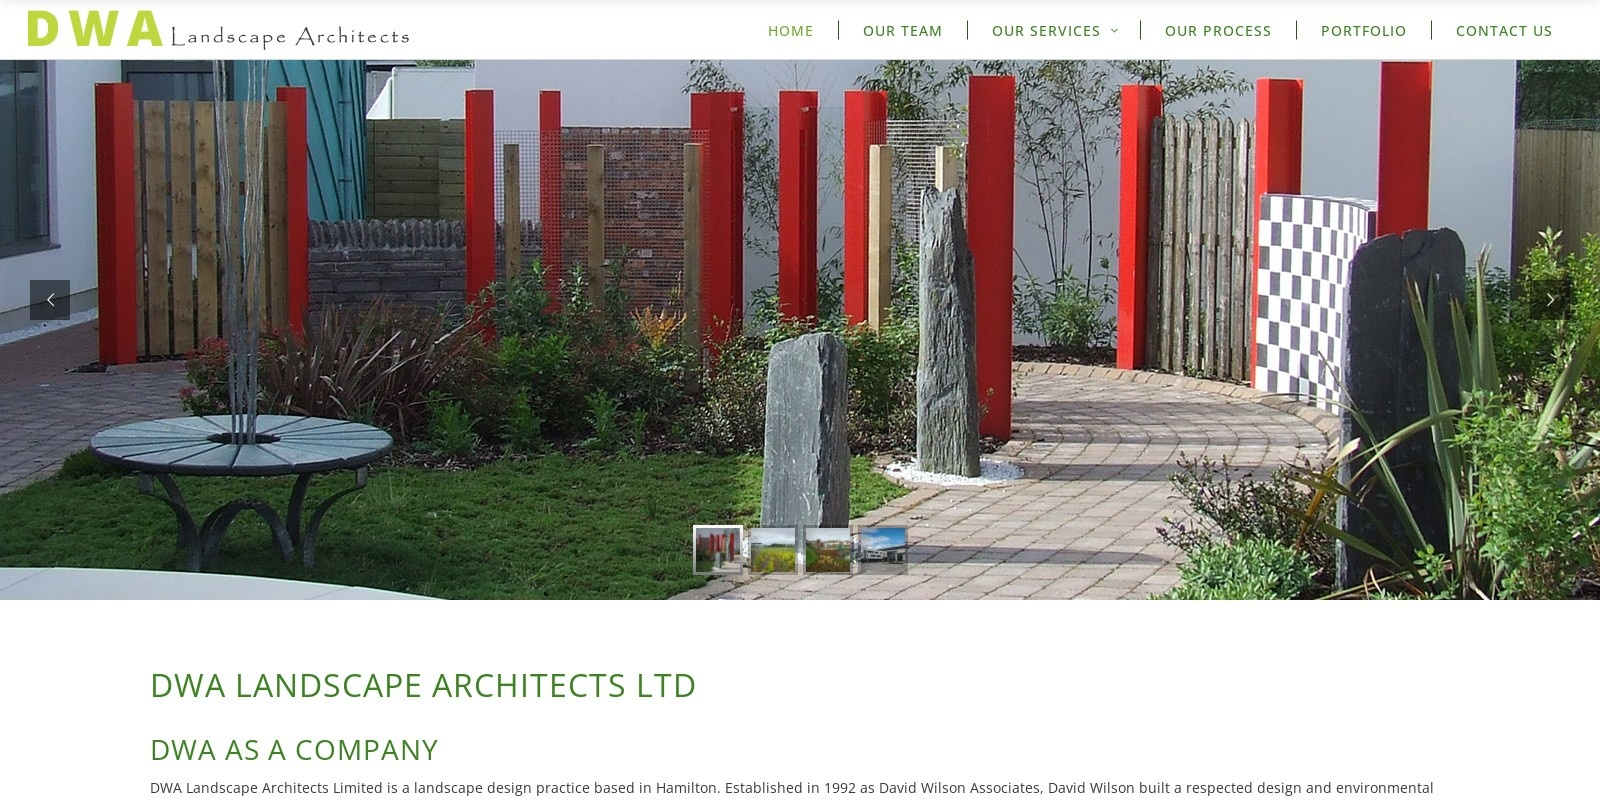 Preview of http://www.dwalandscapearchitects.co.uk